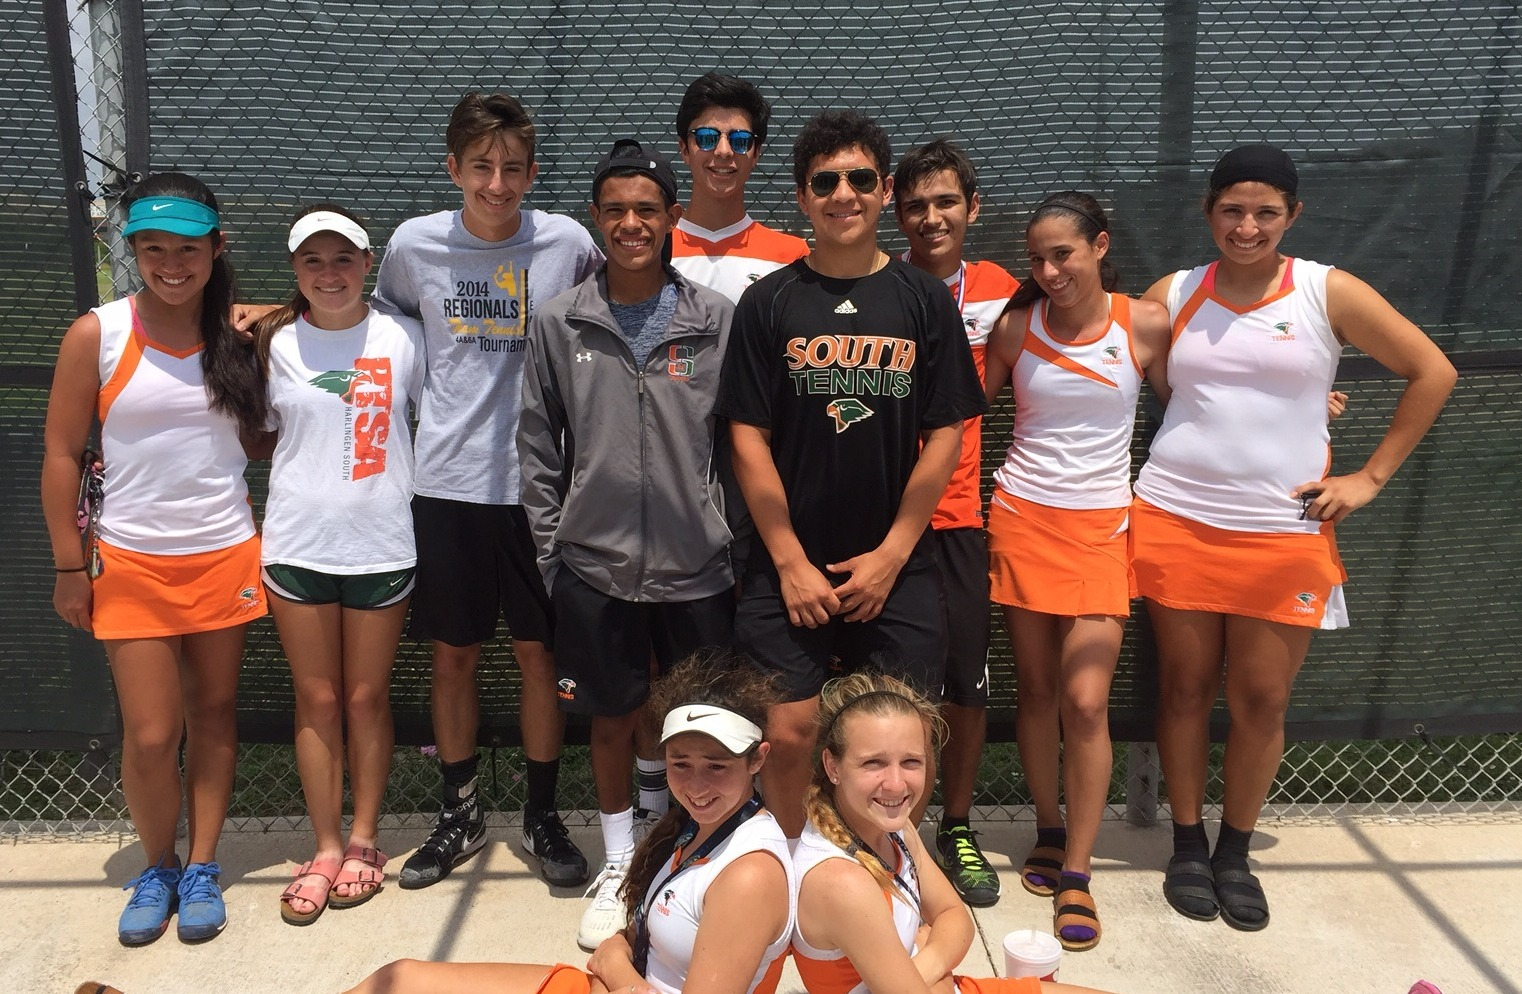 Harlingen South Tennis team advances to regional tournament